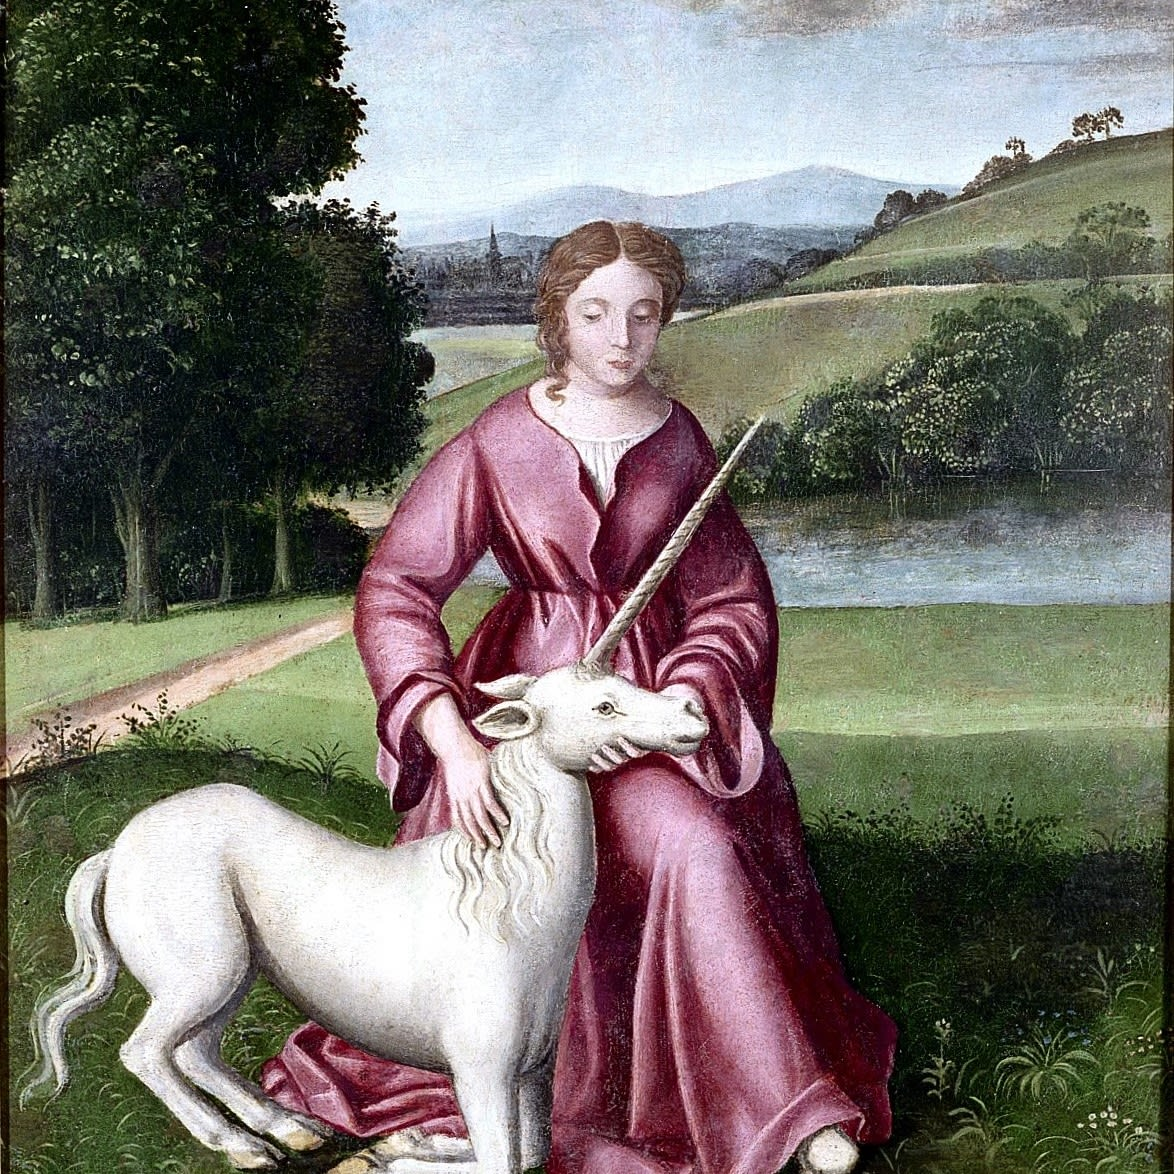 This image shows chastity represented by a virgin and a unicorn.